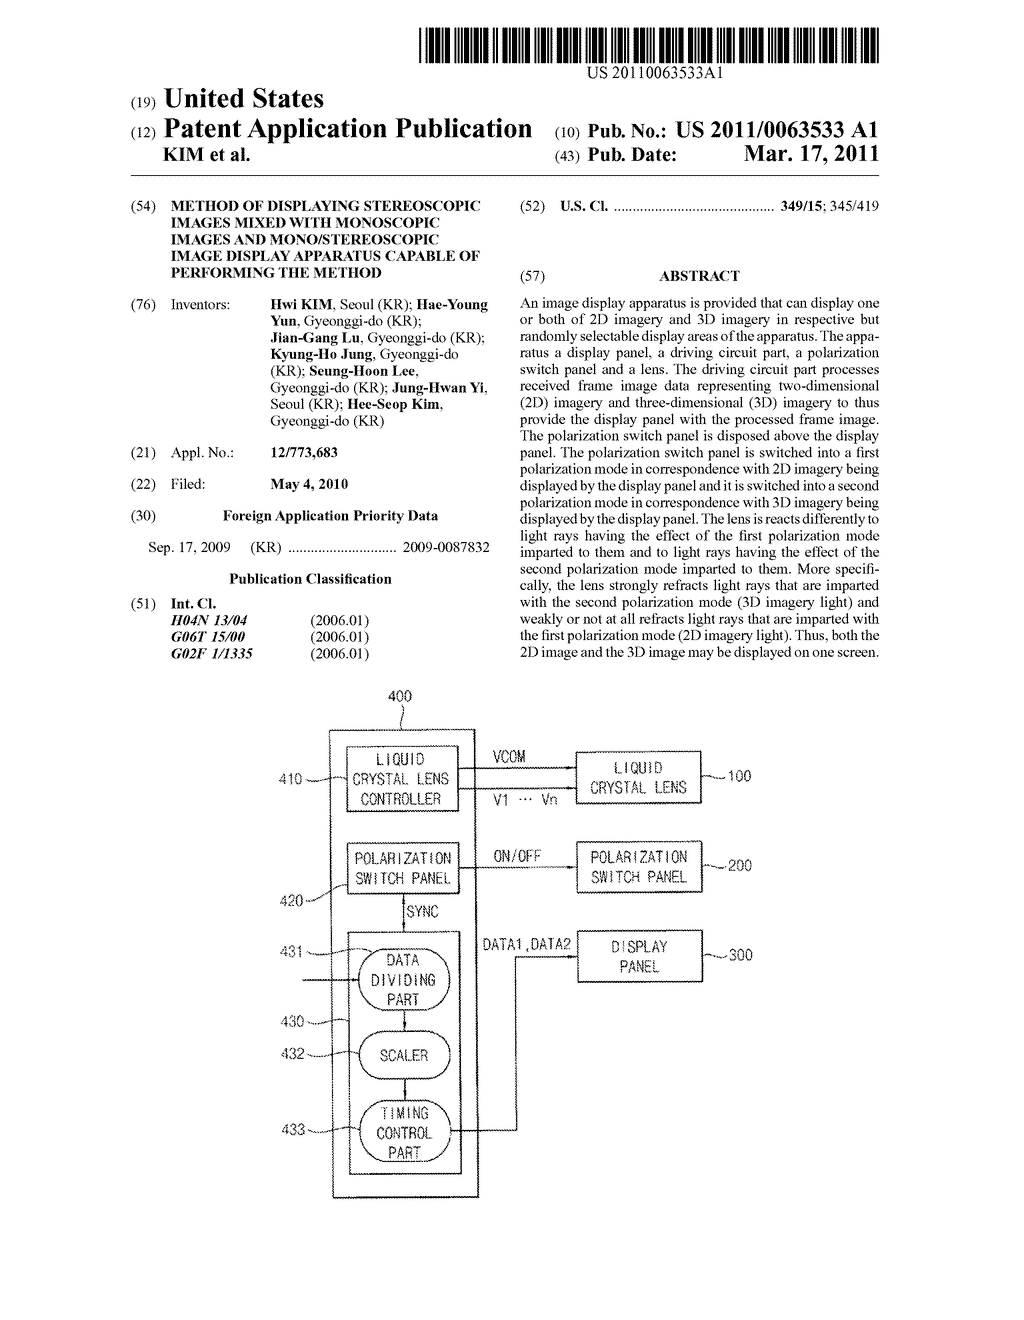 METHOD OF DISPLAYING STEREOSCOPIC IMAGES MIXED WITH MONOSCOPIC IMAGES AND MONO/STEREOSCOPIC IMAGE DISPLAY APPARATUS CAPABLE OF PERFORMING THE METHOD - diagram, schematic, and image 01